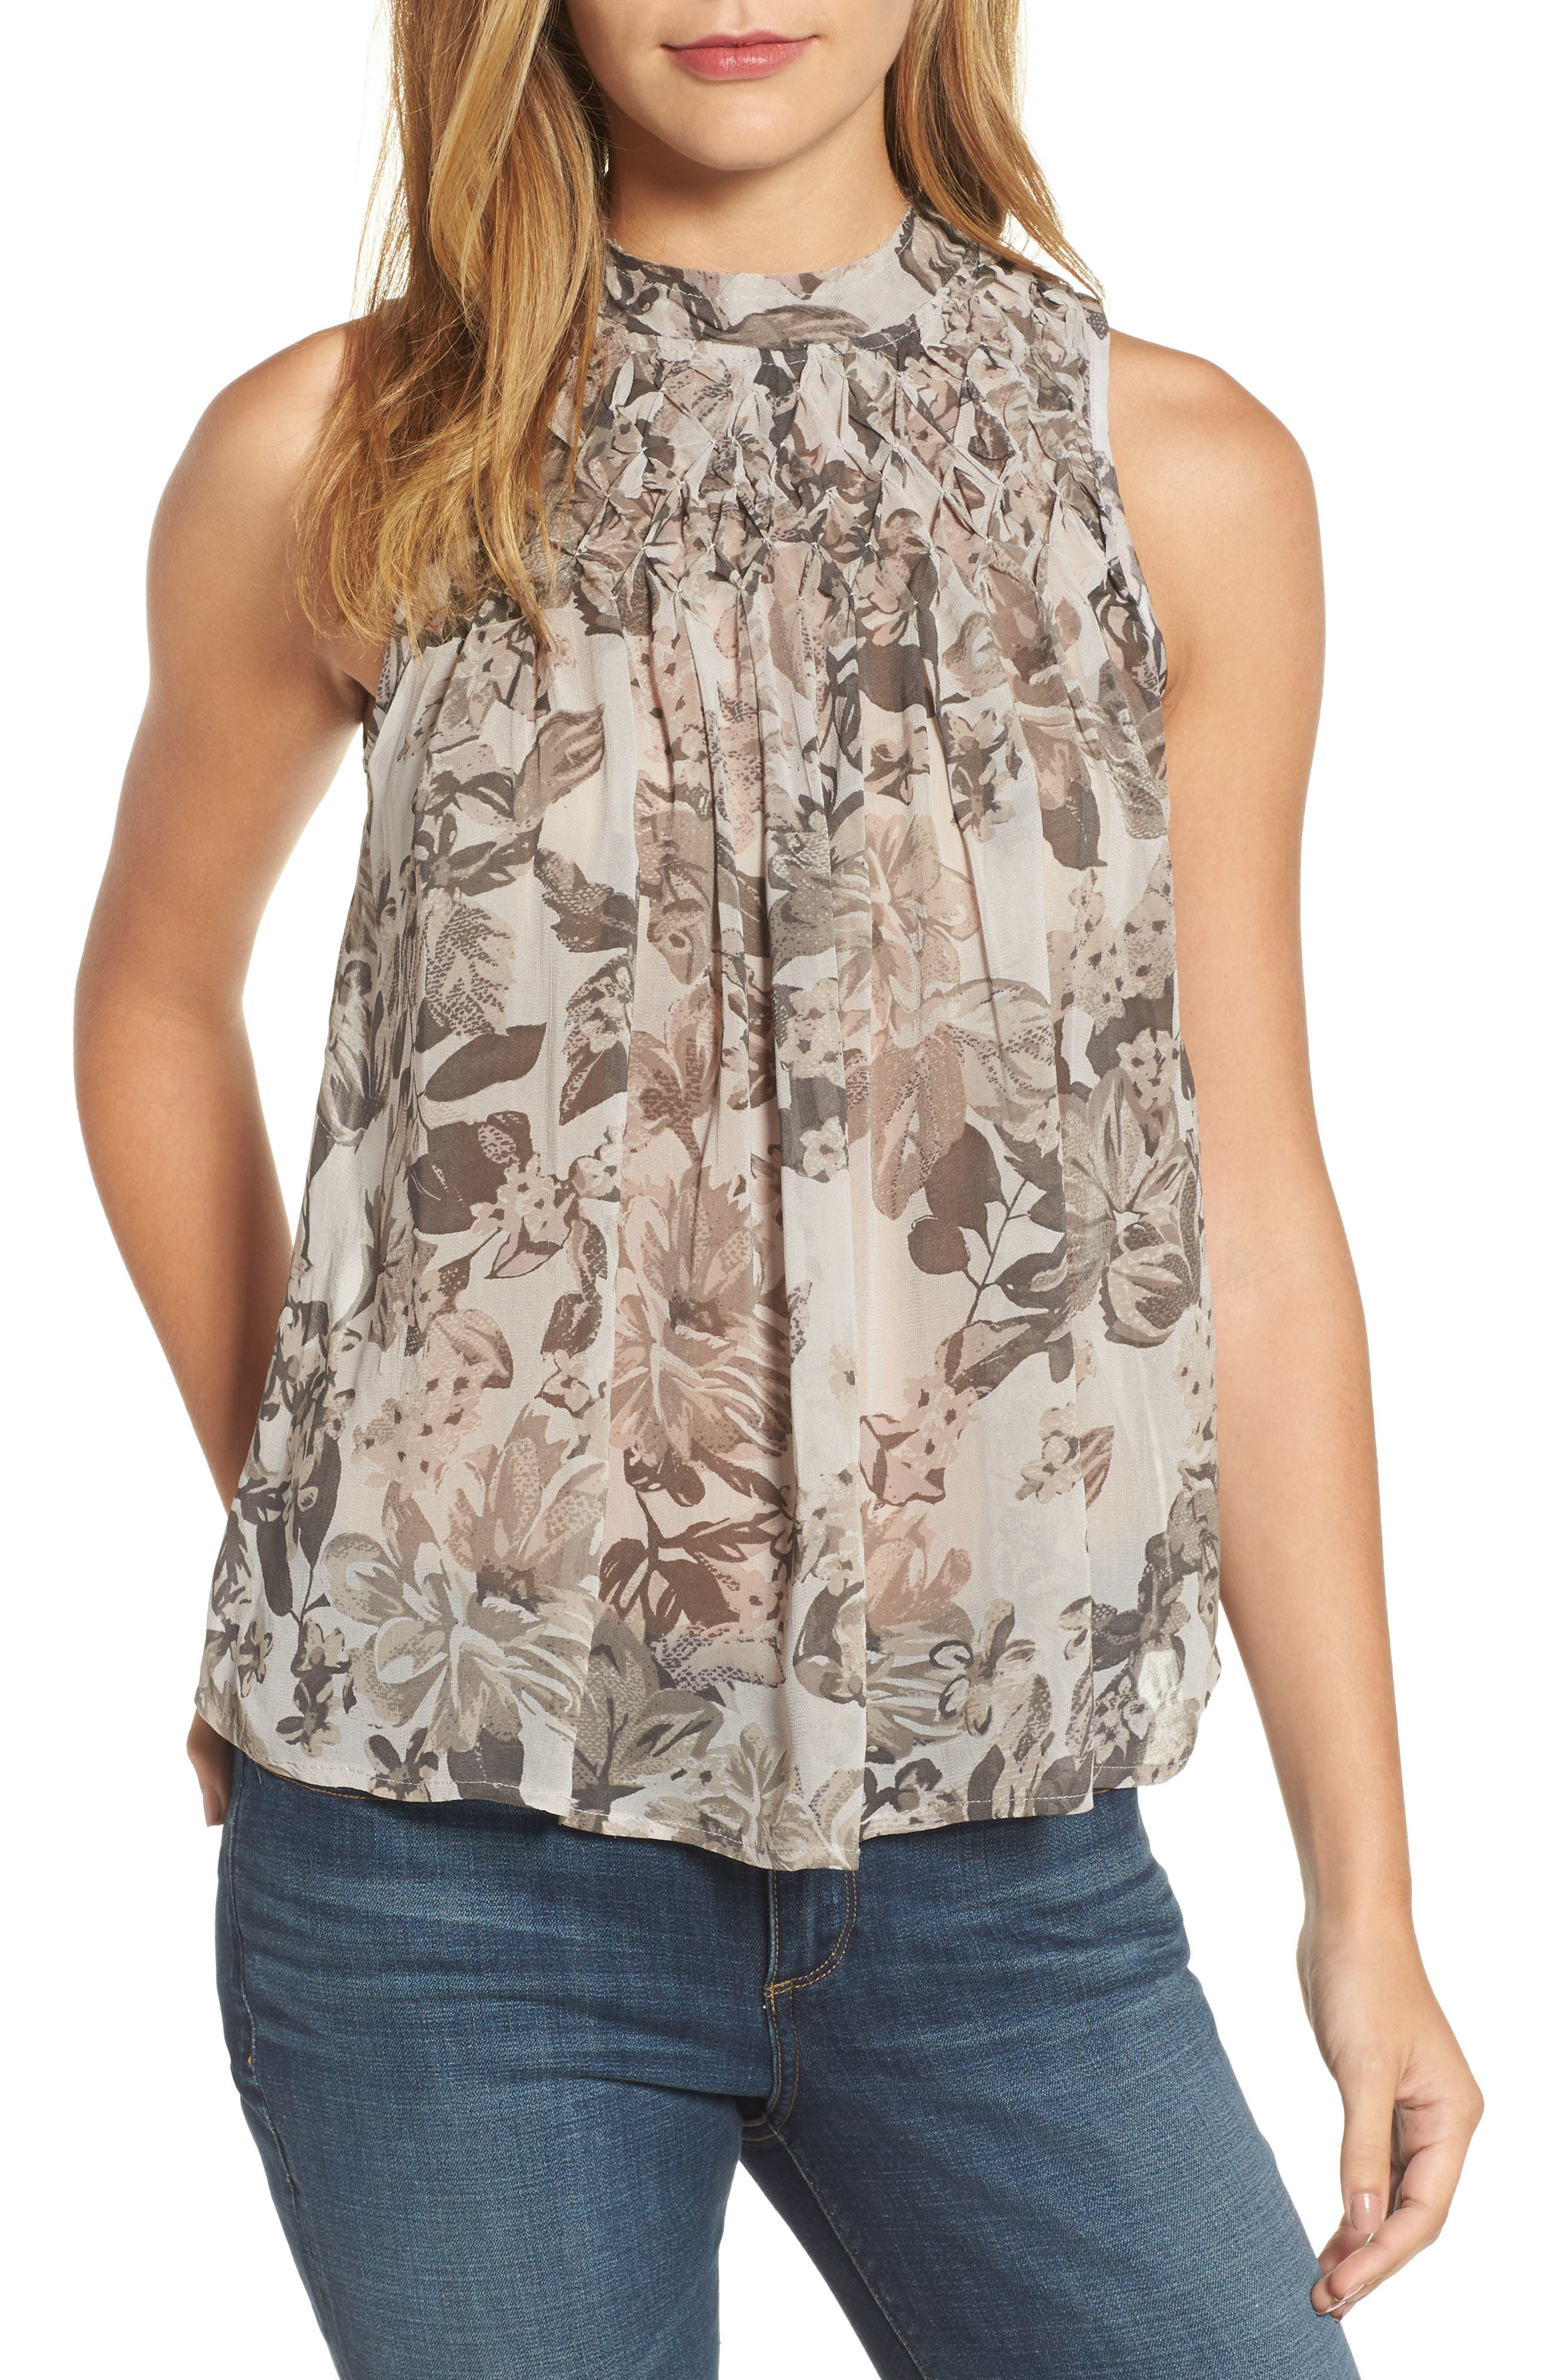 Main Image - Lucky Brand Floral Mock Neck Tank Top